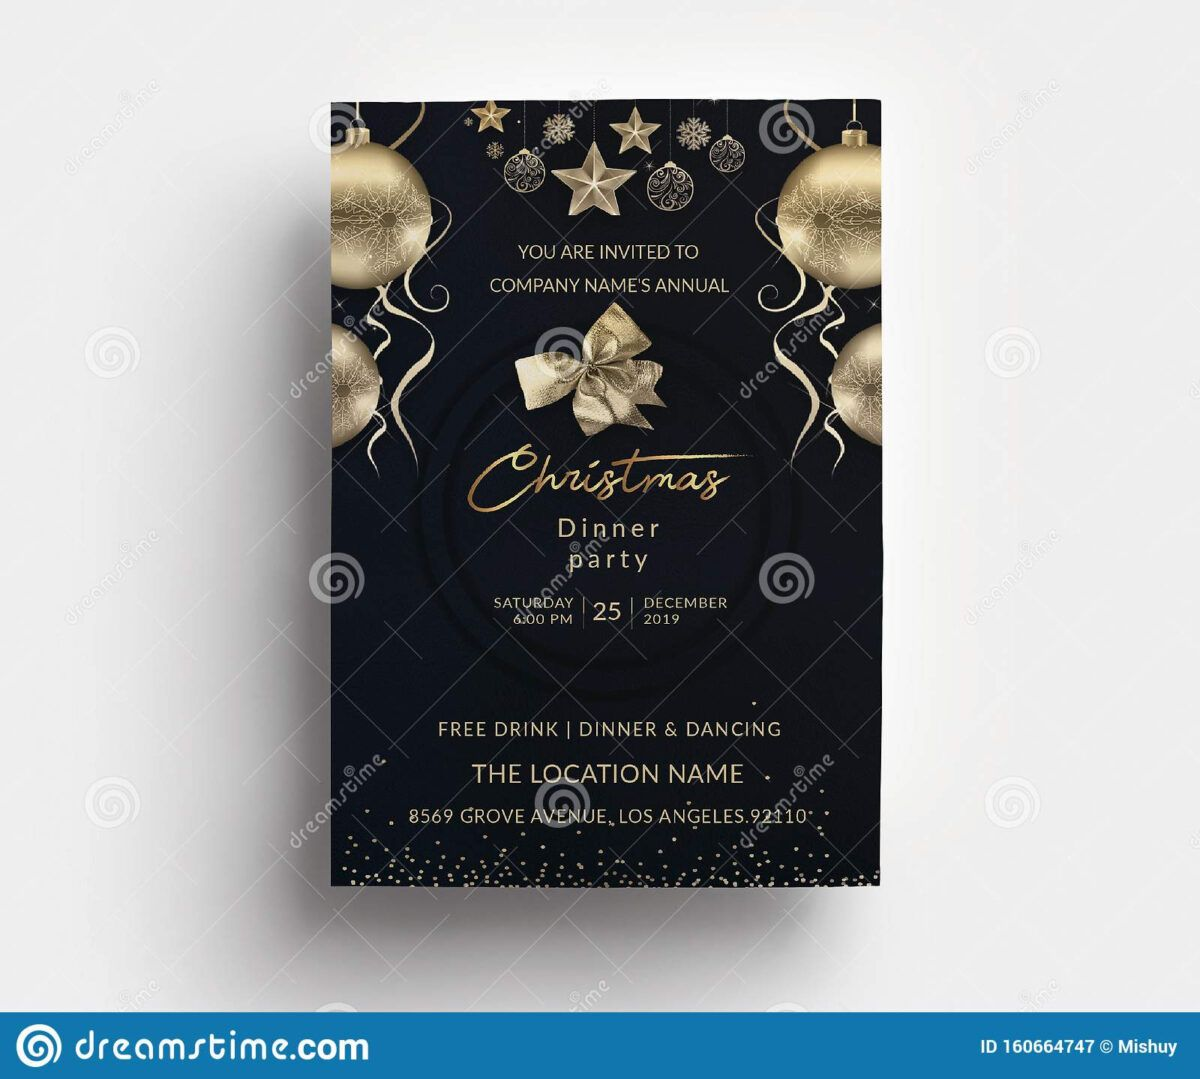 Christmas Dinner Party Invitation Card Template Stock Vector With Regard To 4x6 Phot Dinner Party Invitations Photo Card Template Christmas Photo Card Template